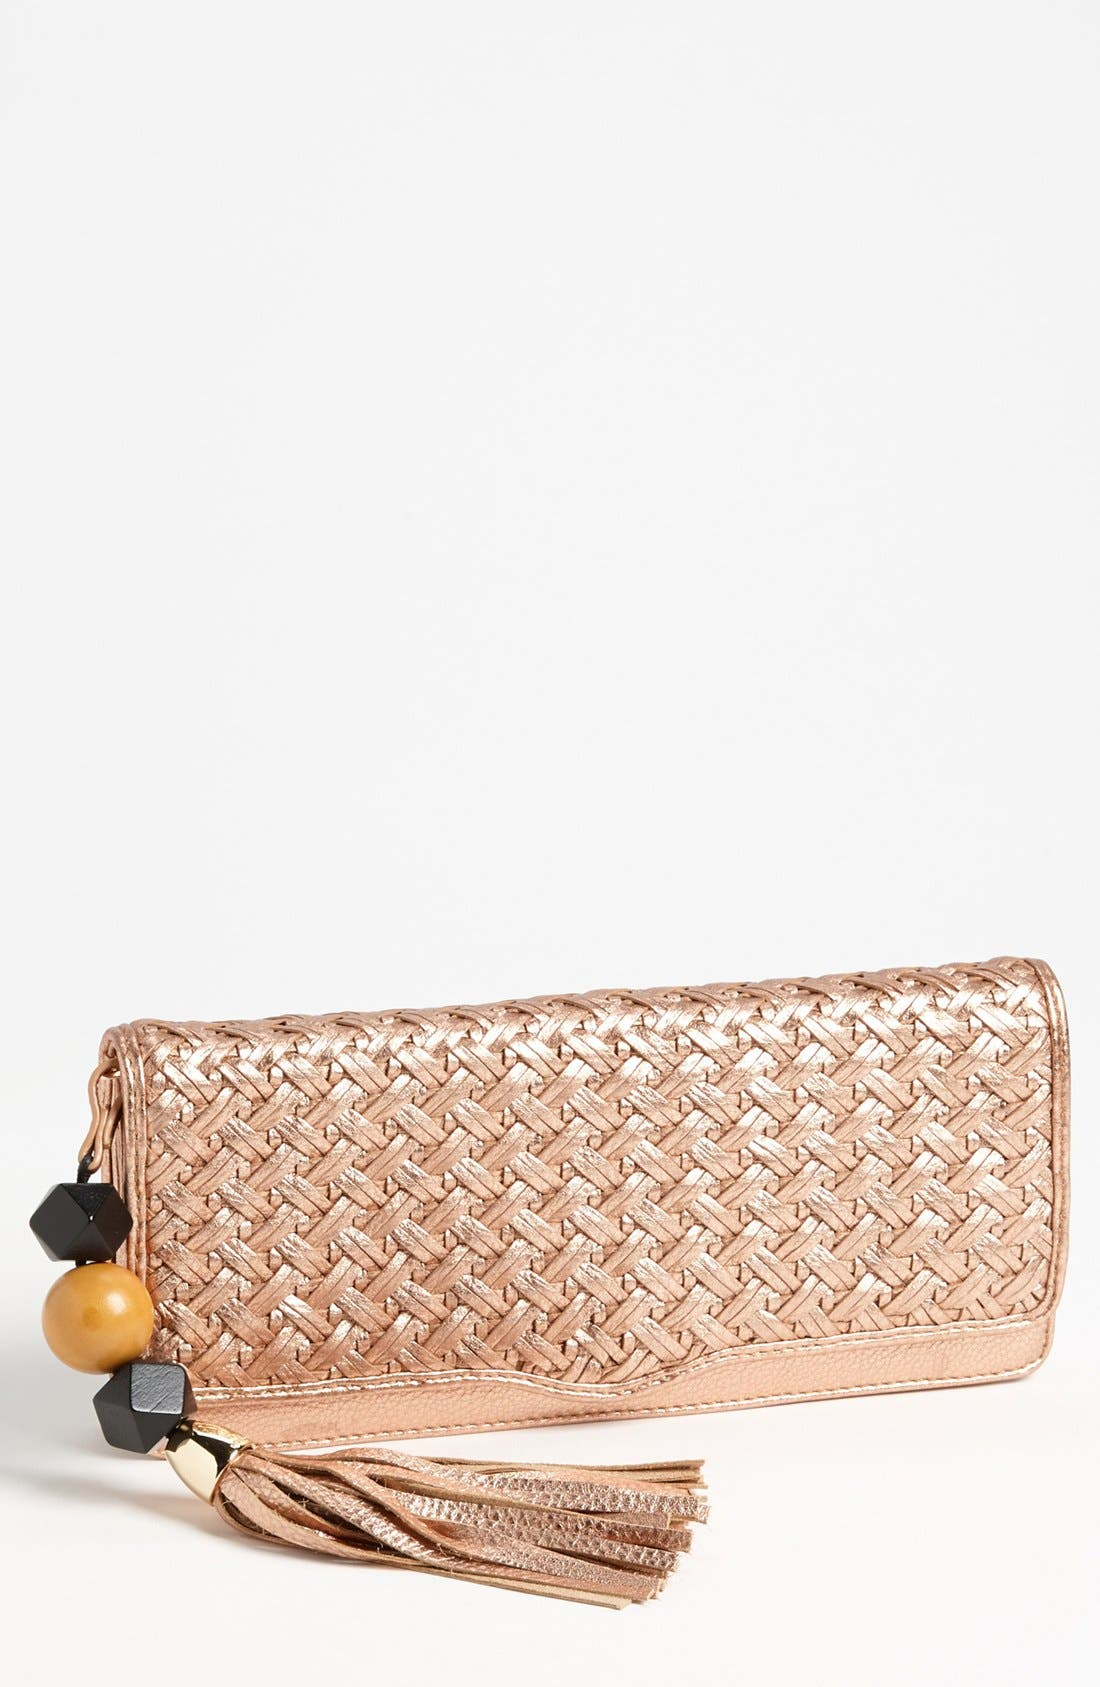 Alternate Image 1 Selected - Rebecca Minkoff 'Honey' Clutch